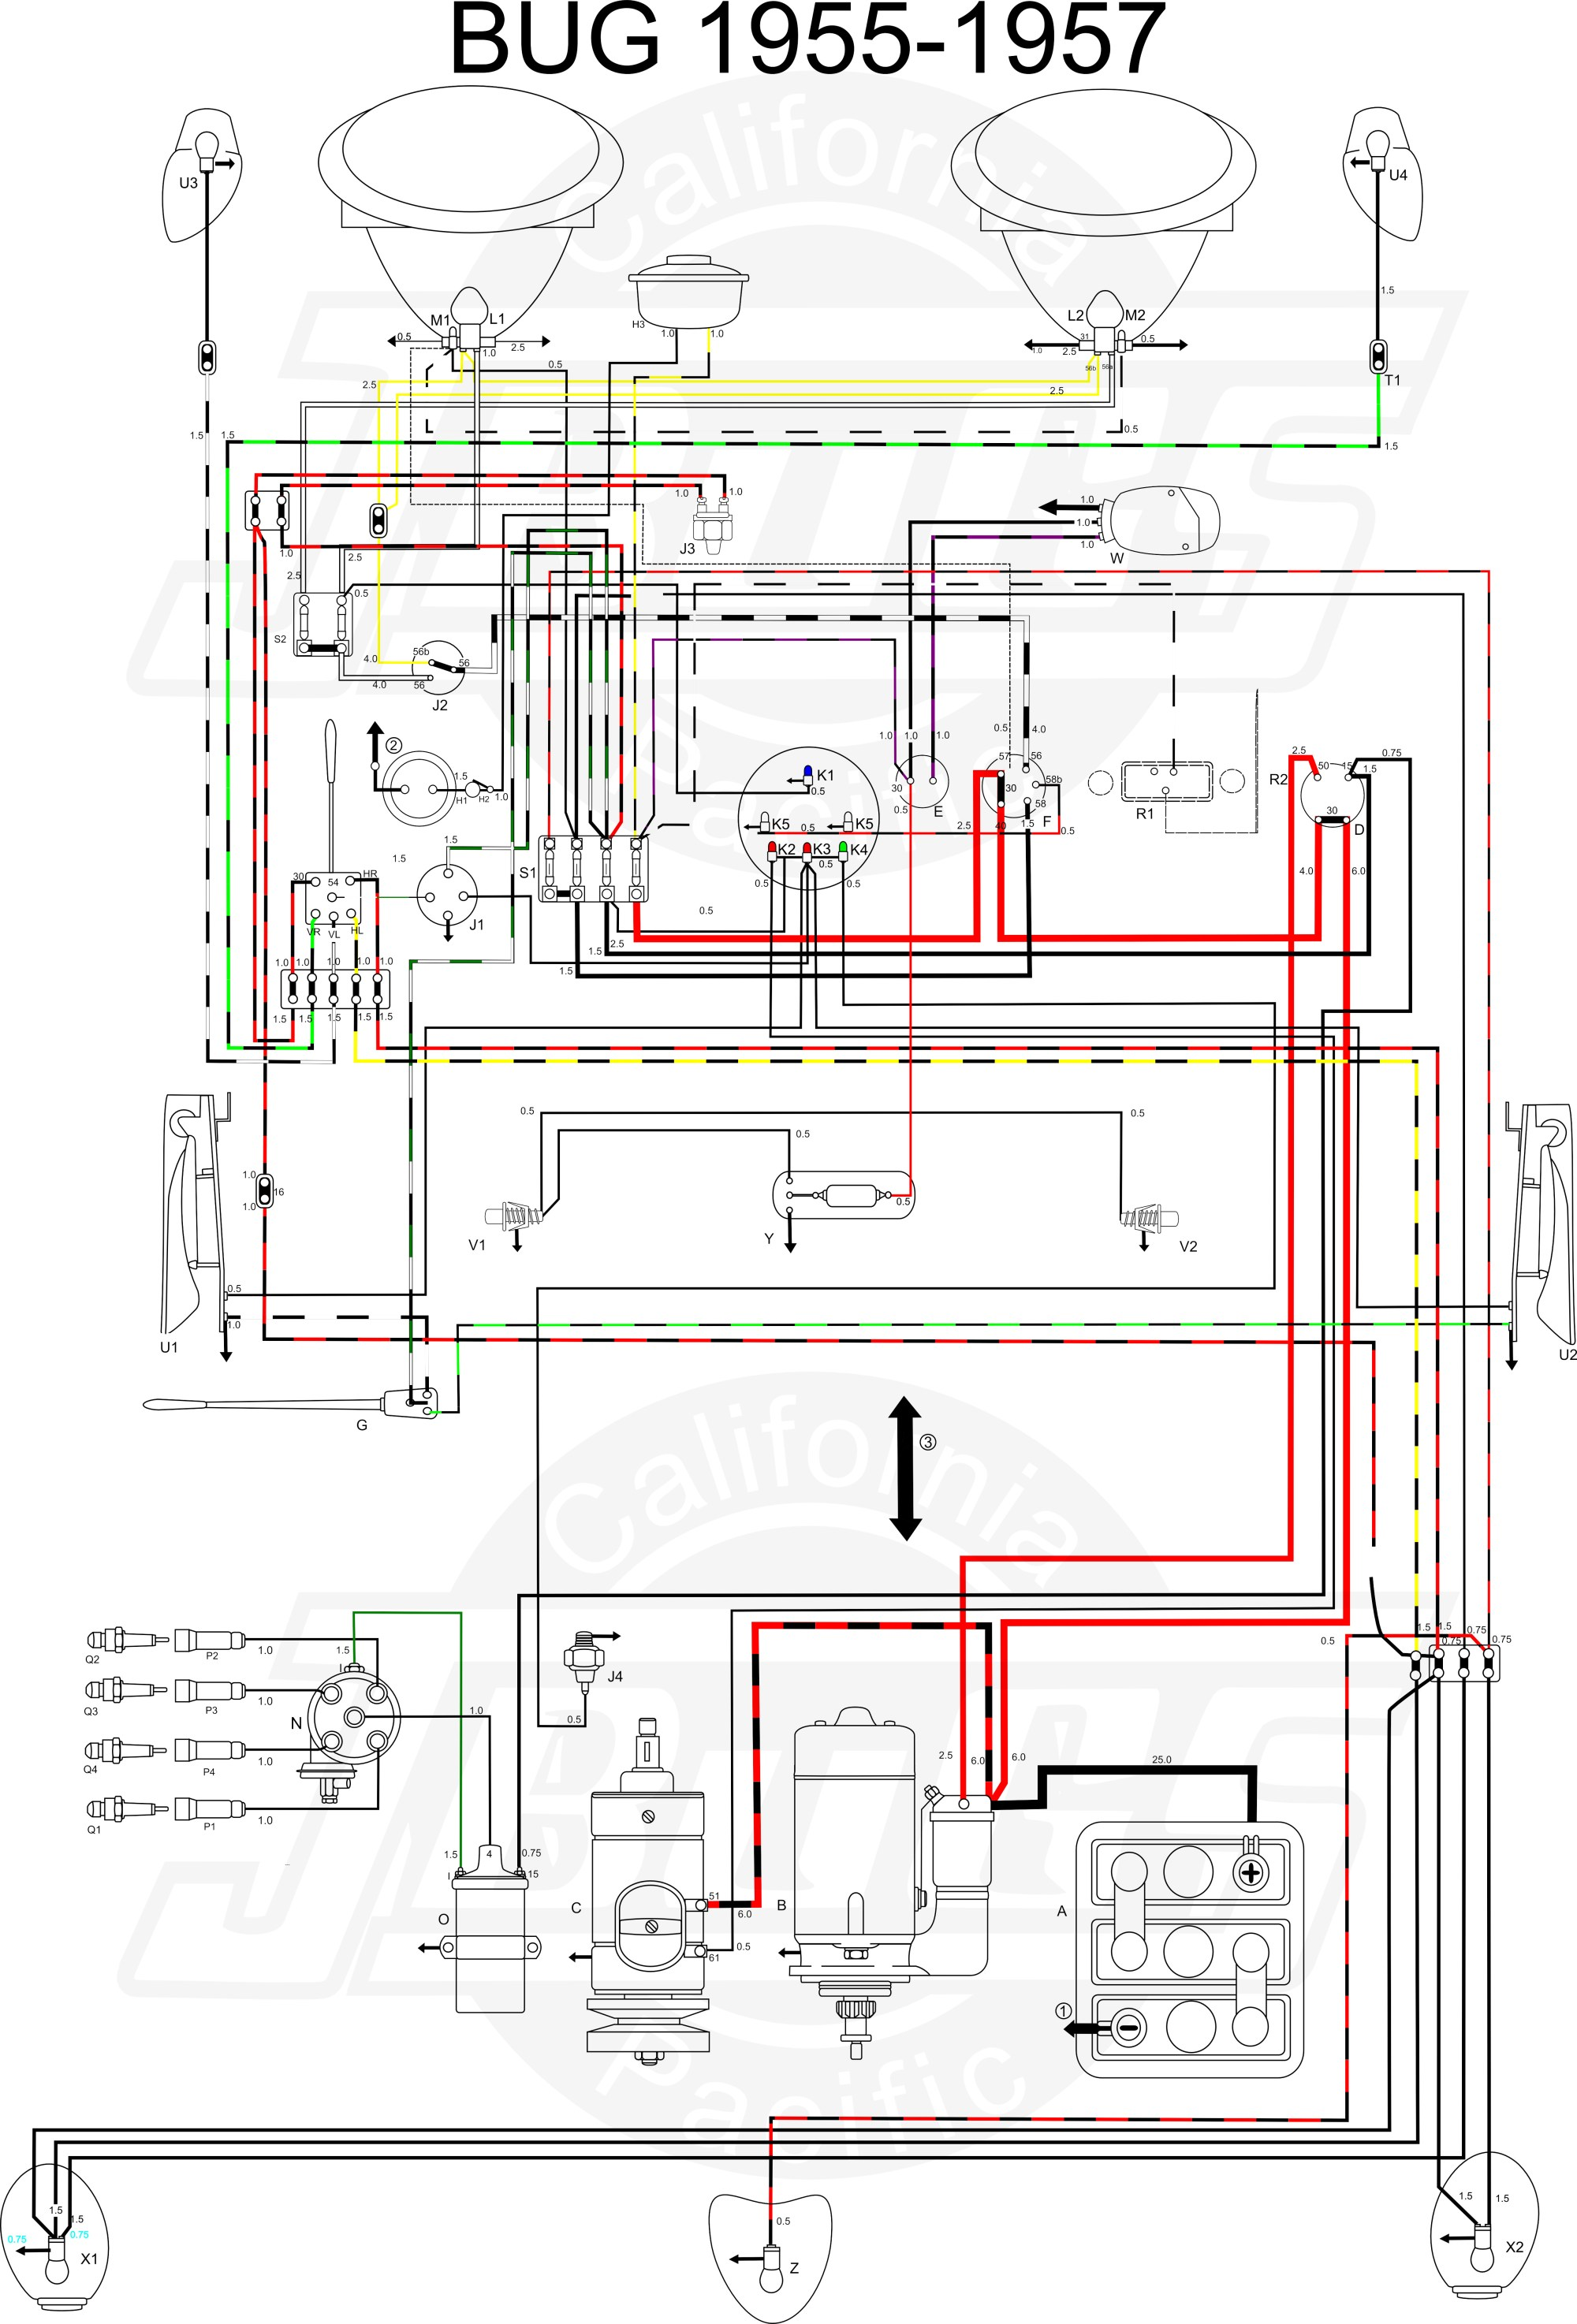 hight resolution of bus wiring diagrams wiring diagram datasource1978 vw bus wiring harness wiring diagram toolbox dcc bus wiring